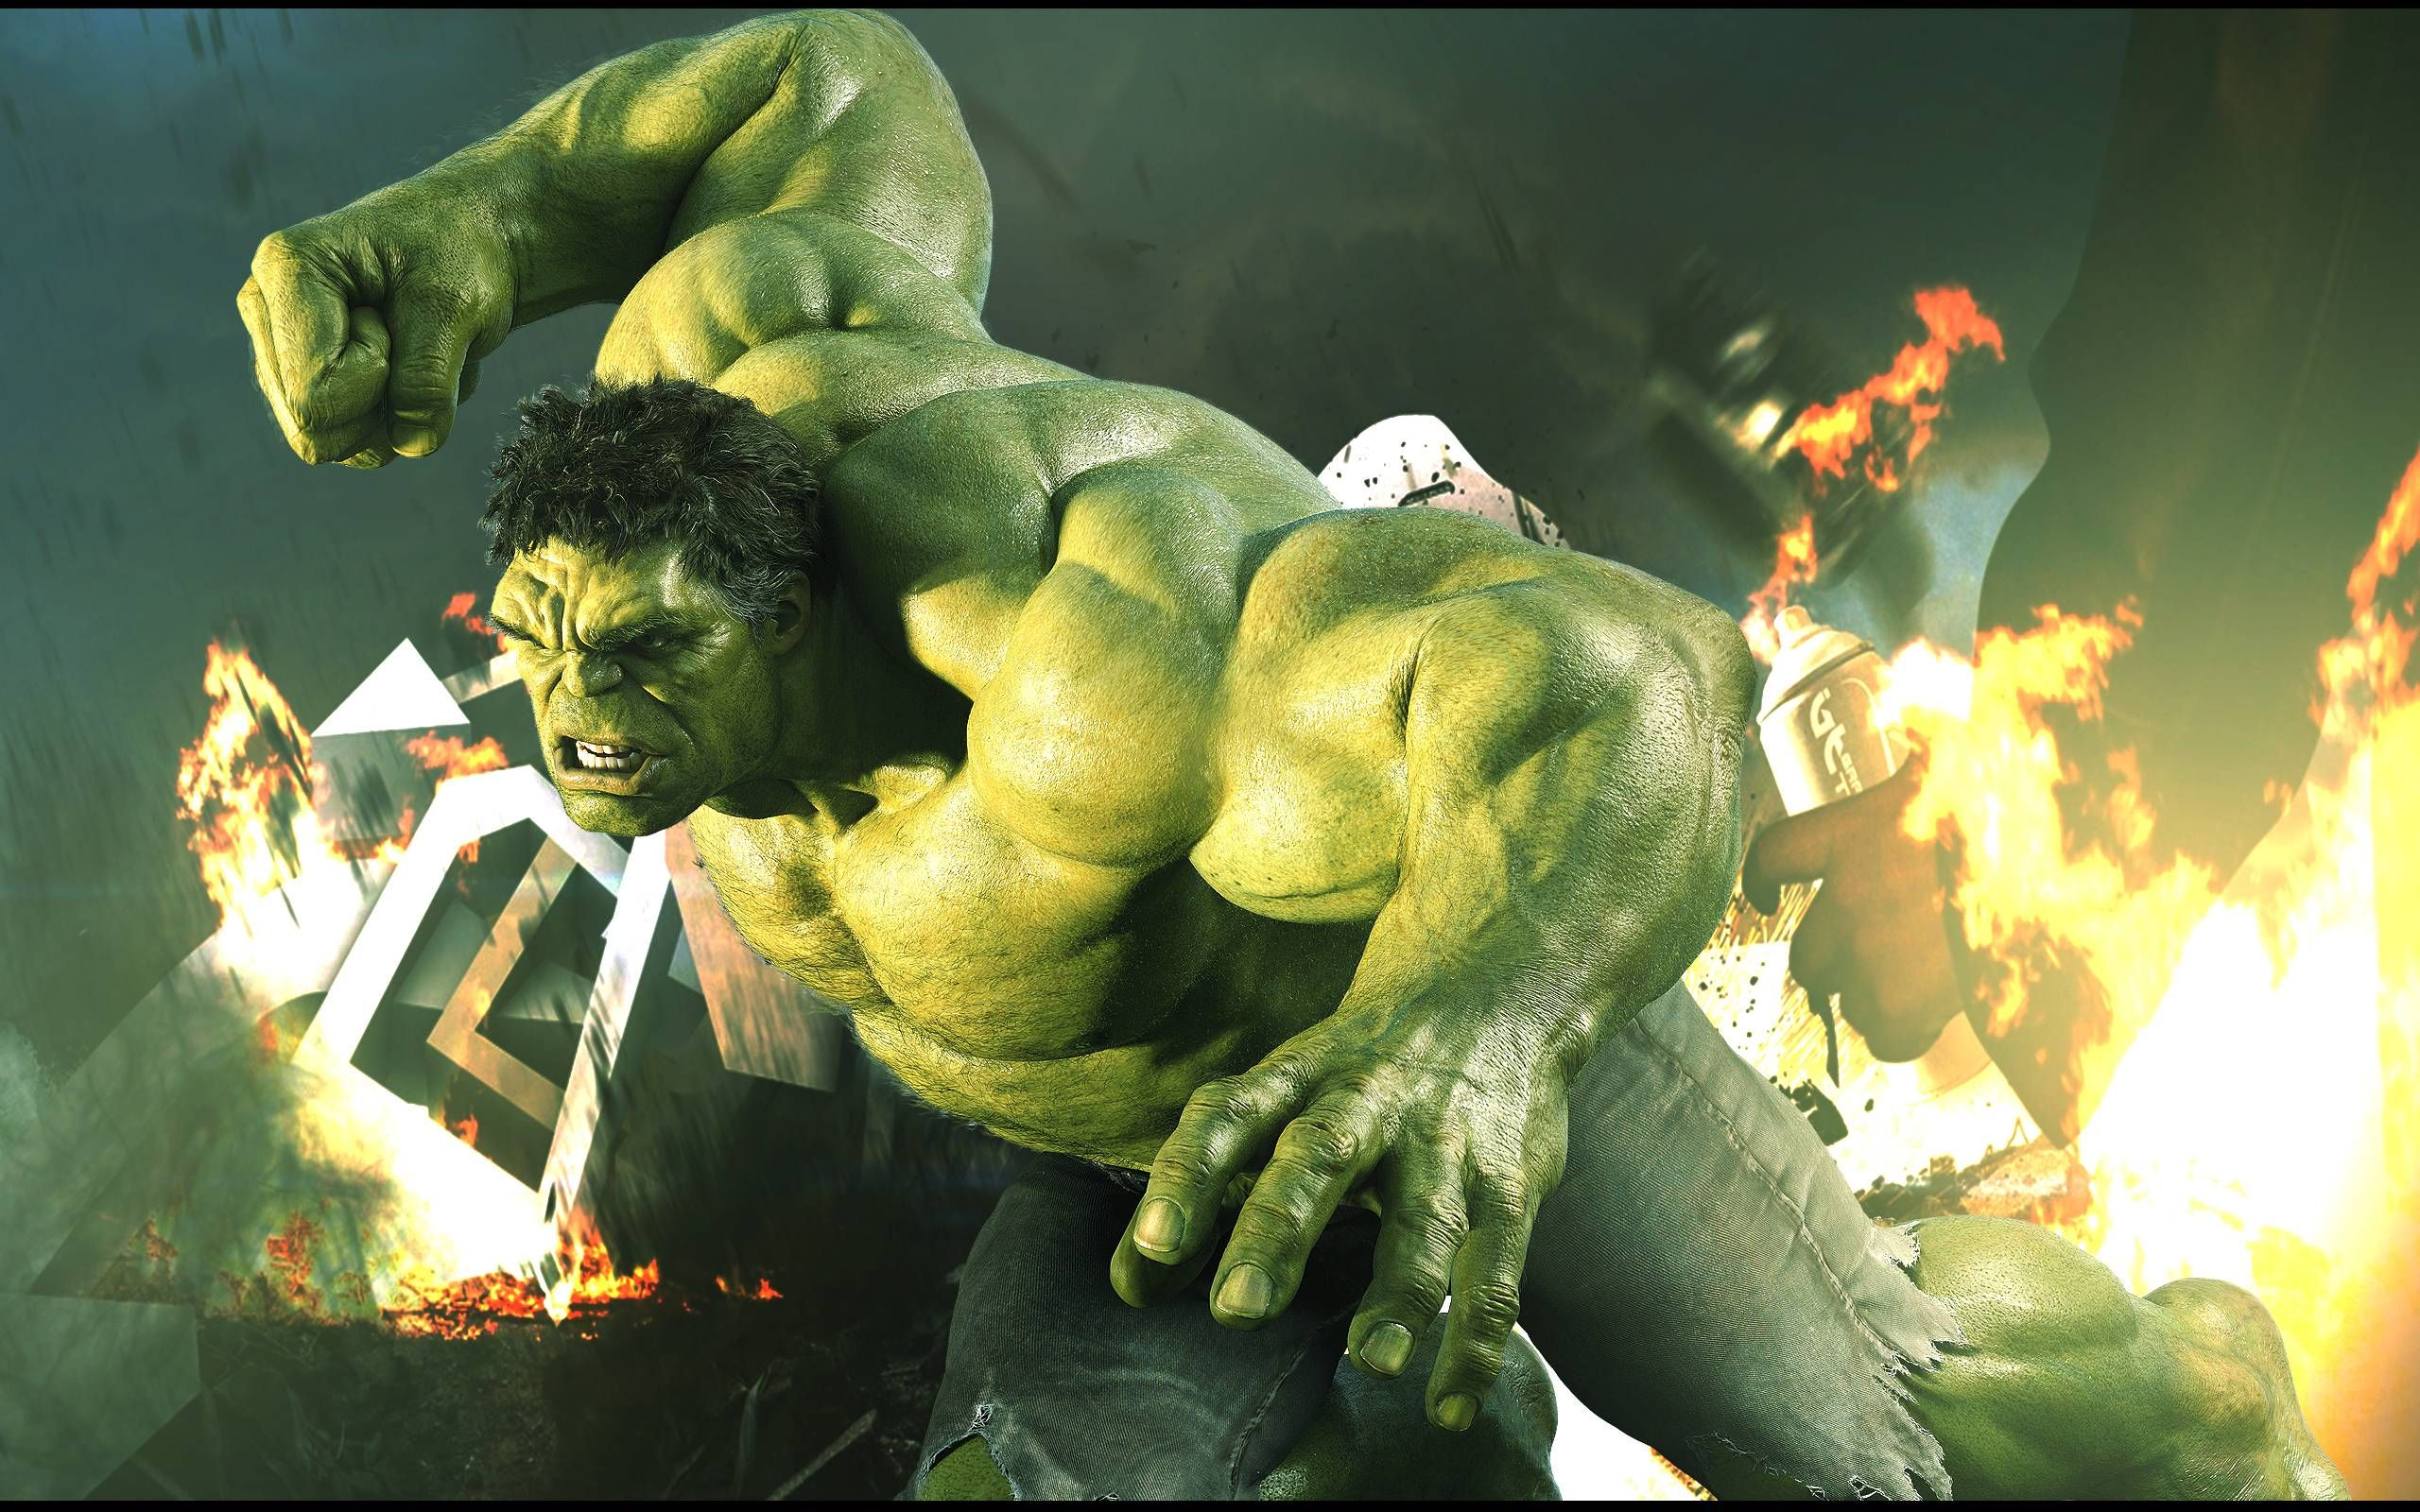 Hulk Wallpapers 2016 Wallpaper Cave Incredible hulk